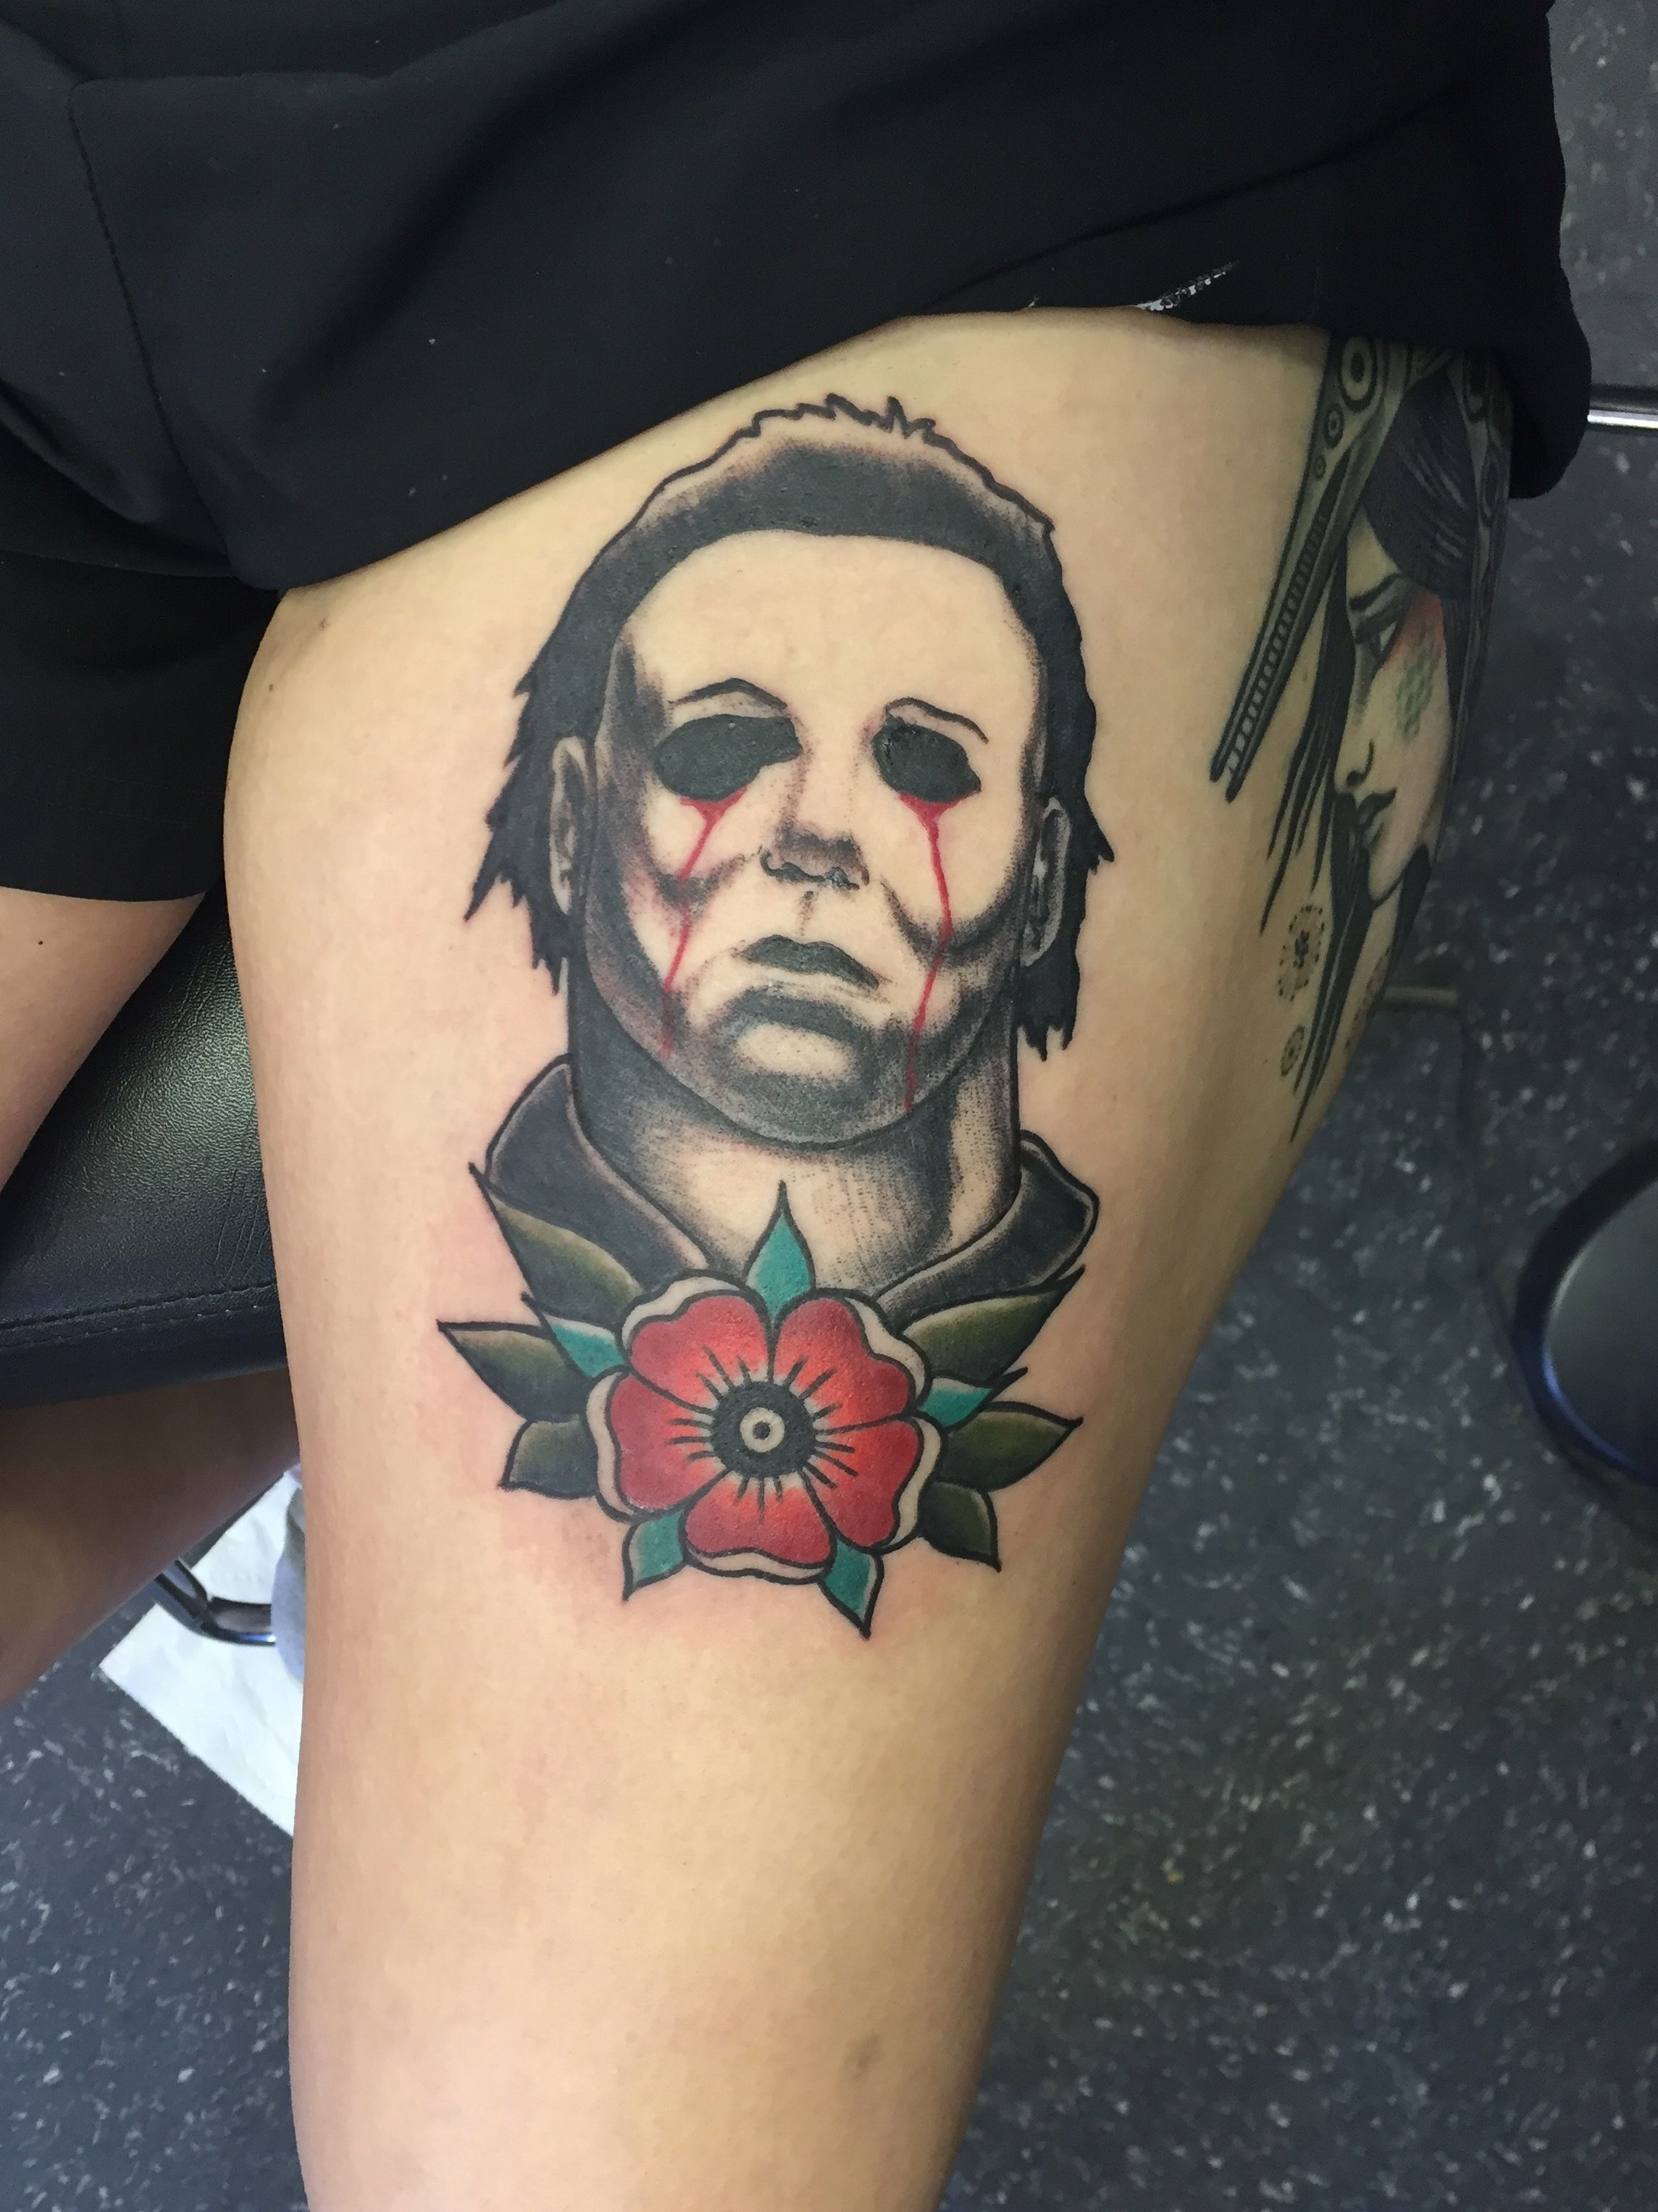 Neotraditional michael myers tattoo from aaa tattoo in for Tattoo shops in lafayette